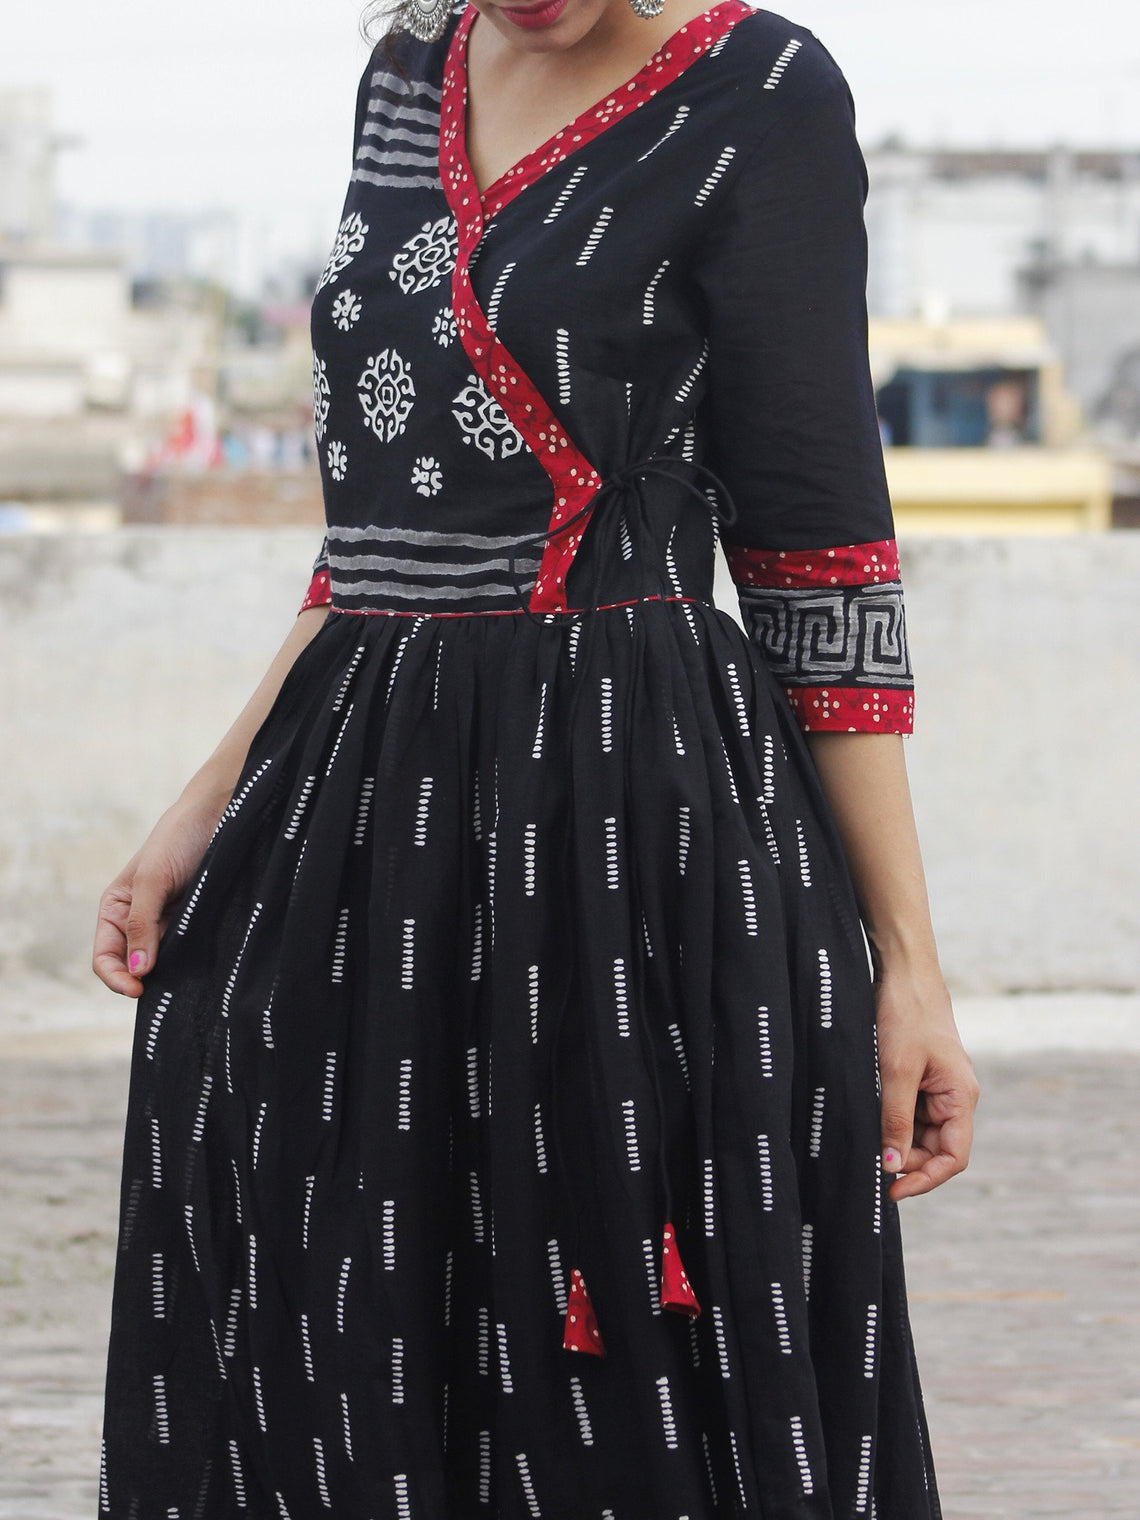 Naaz Afna - Black Ivory Grey  Maroon Hand Block Printed Angrakha Dress With Gathers -  DS19F001